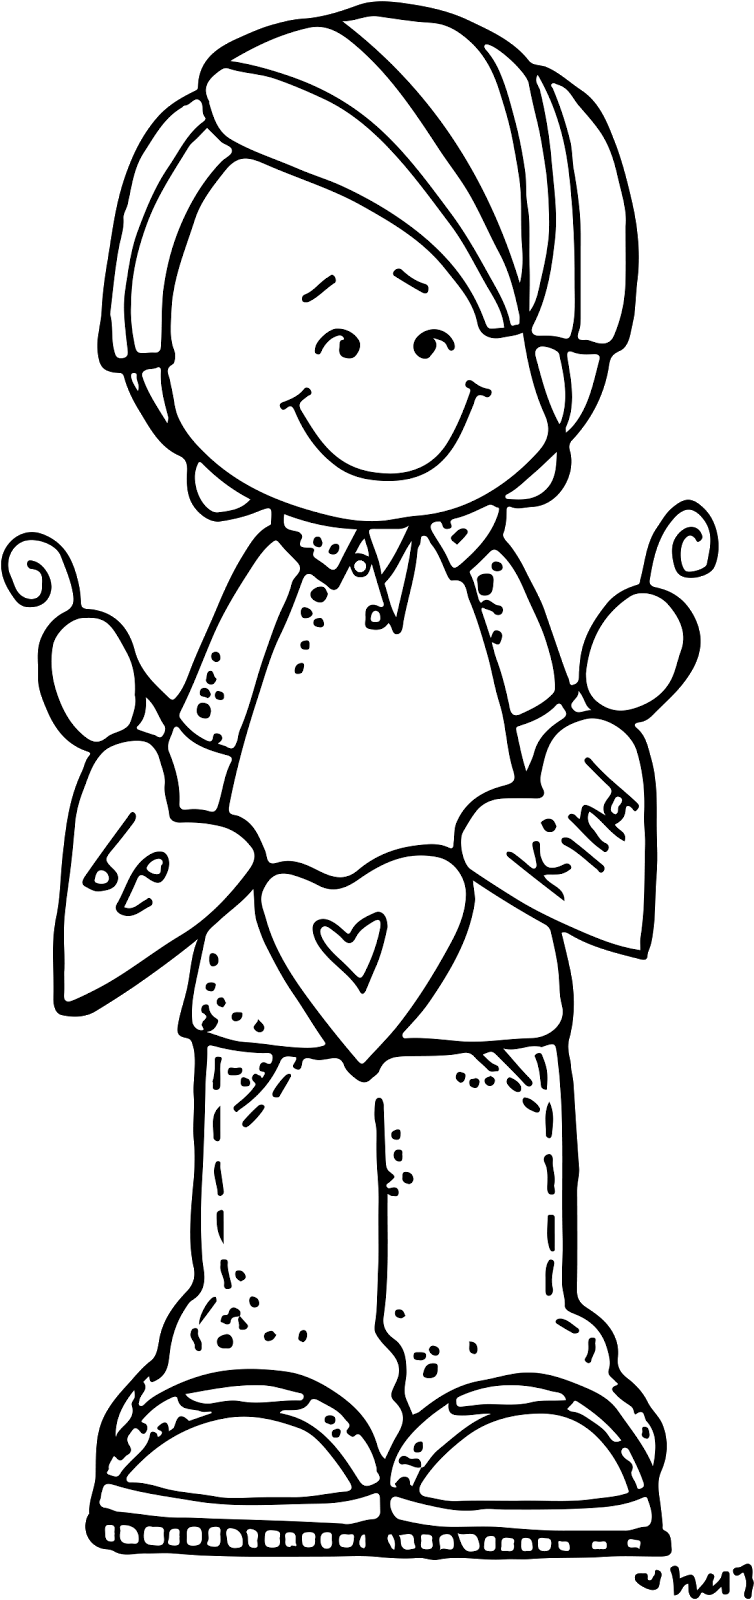 Kindness Clipart Black And White (87+ images in Collection) Page 3.